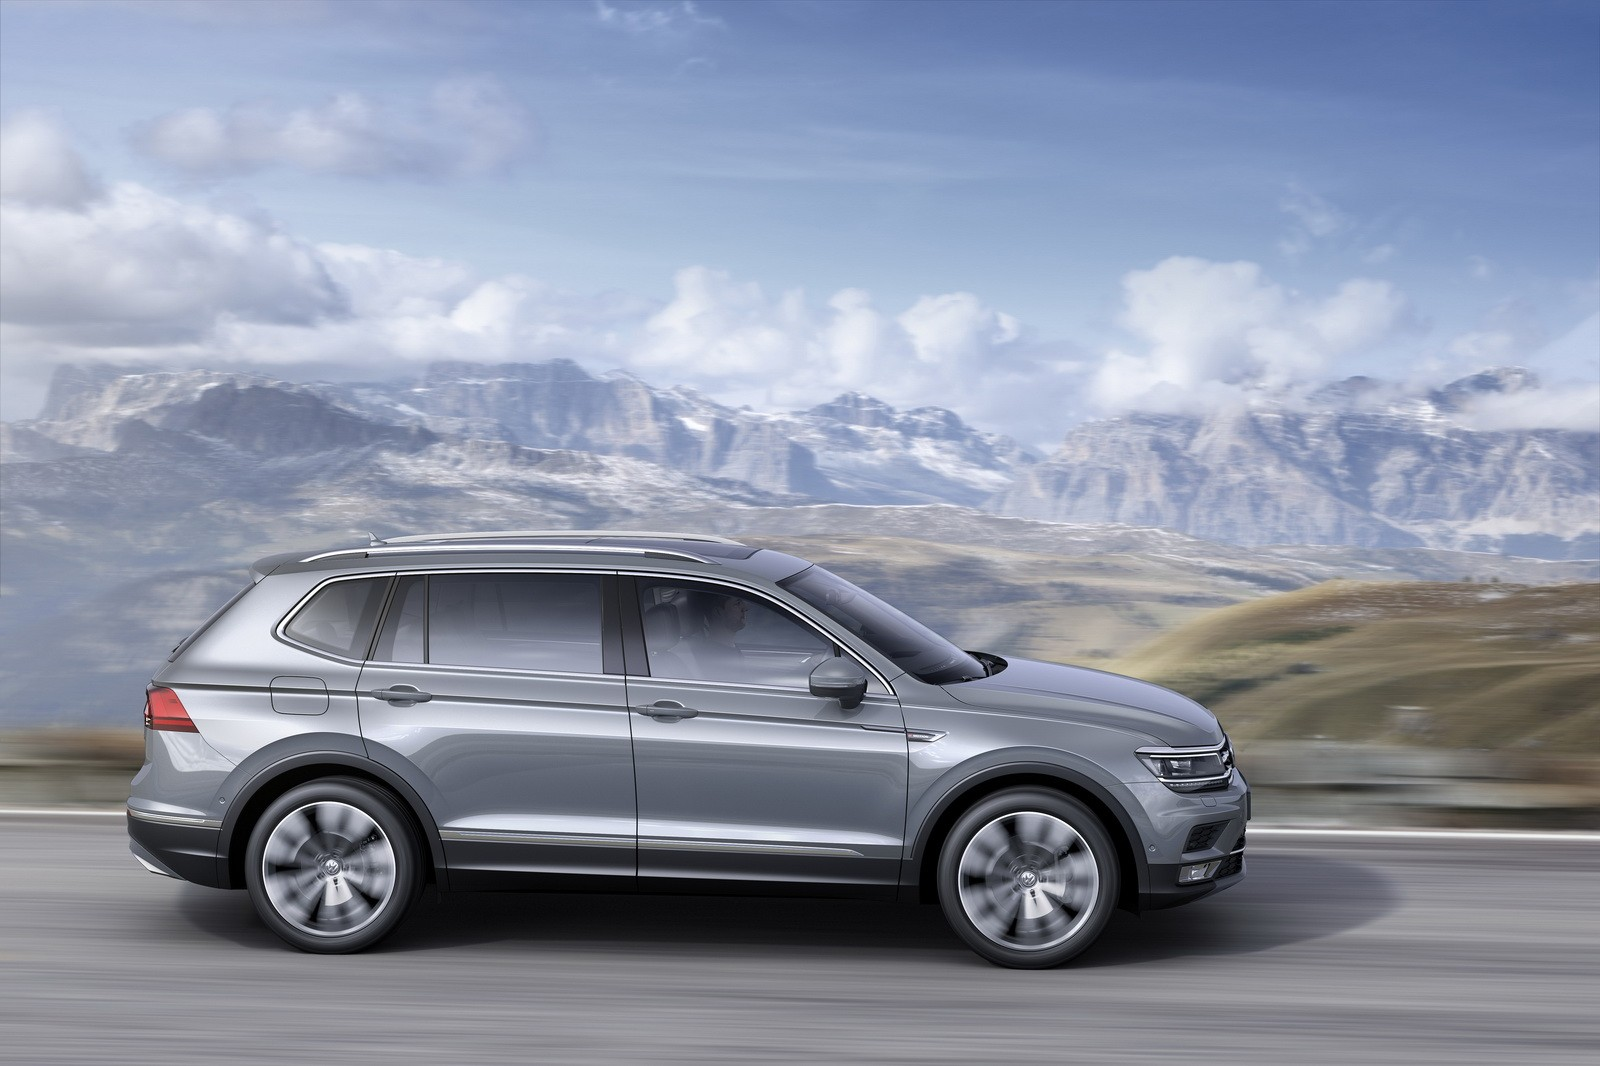 volkswagen unveils tiguan allspace 7 seater for europe we want a vin check autoevolution. Black Bedroom Furniture Sets. Home Design Ideas